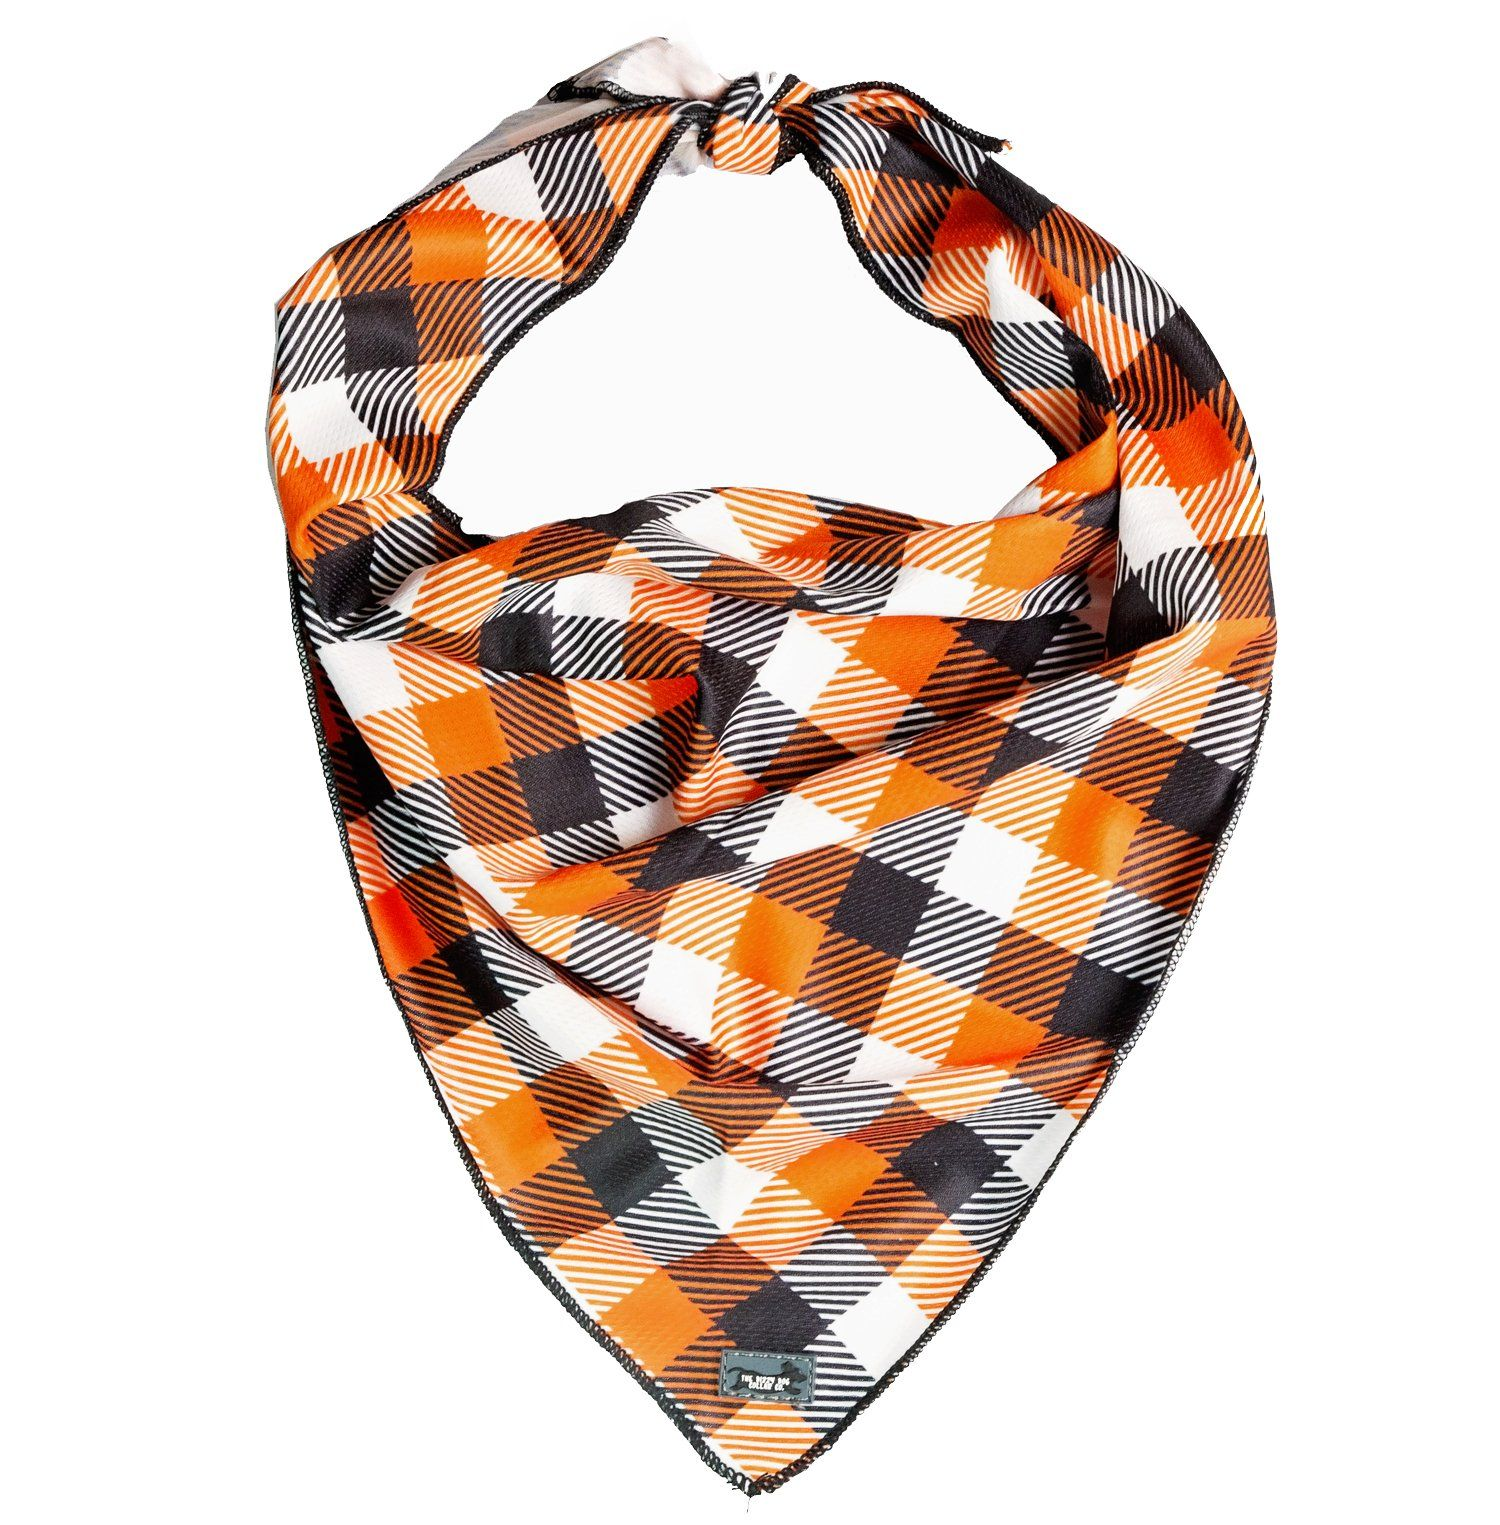 stunning orange plaid dog bandana, perfect for fall or autumn